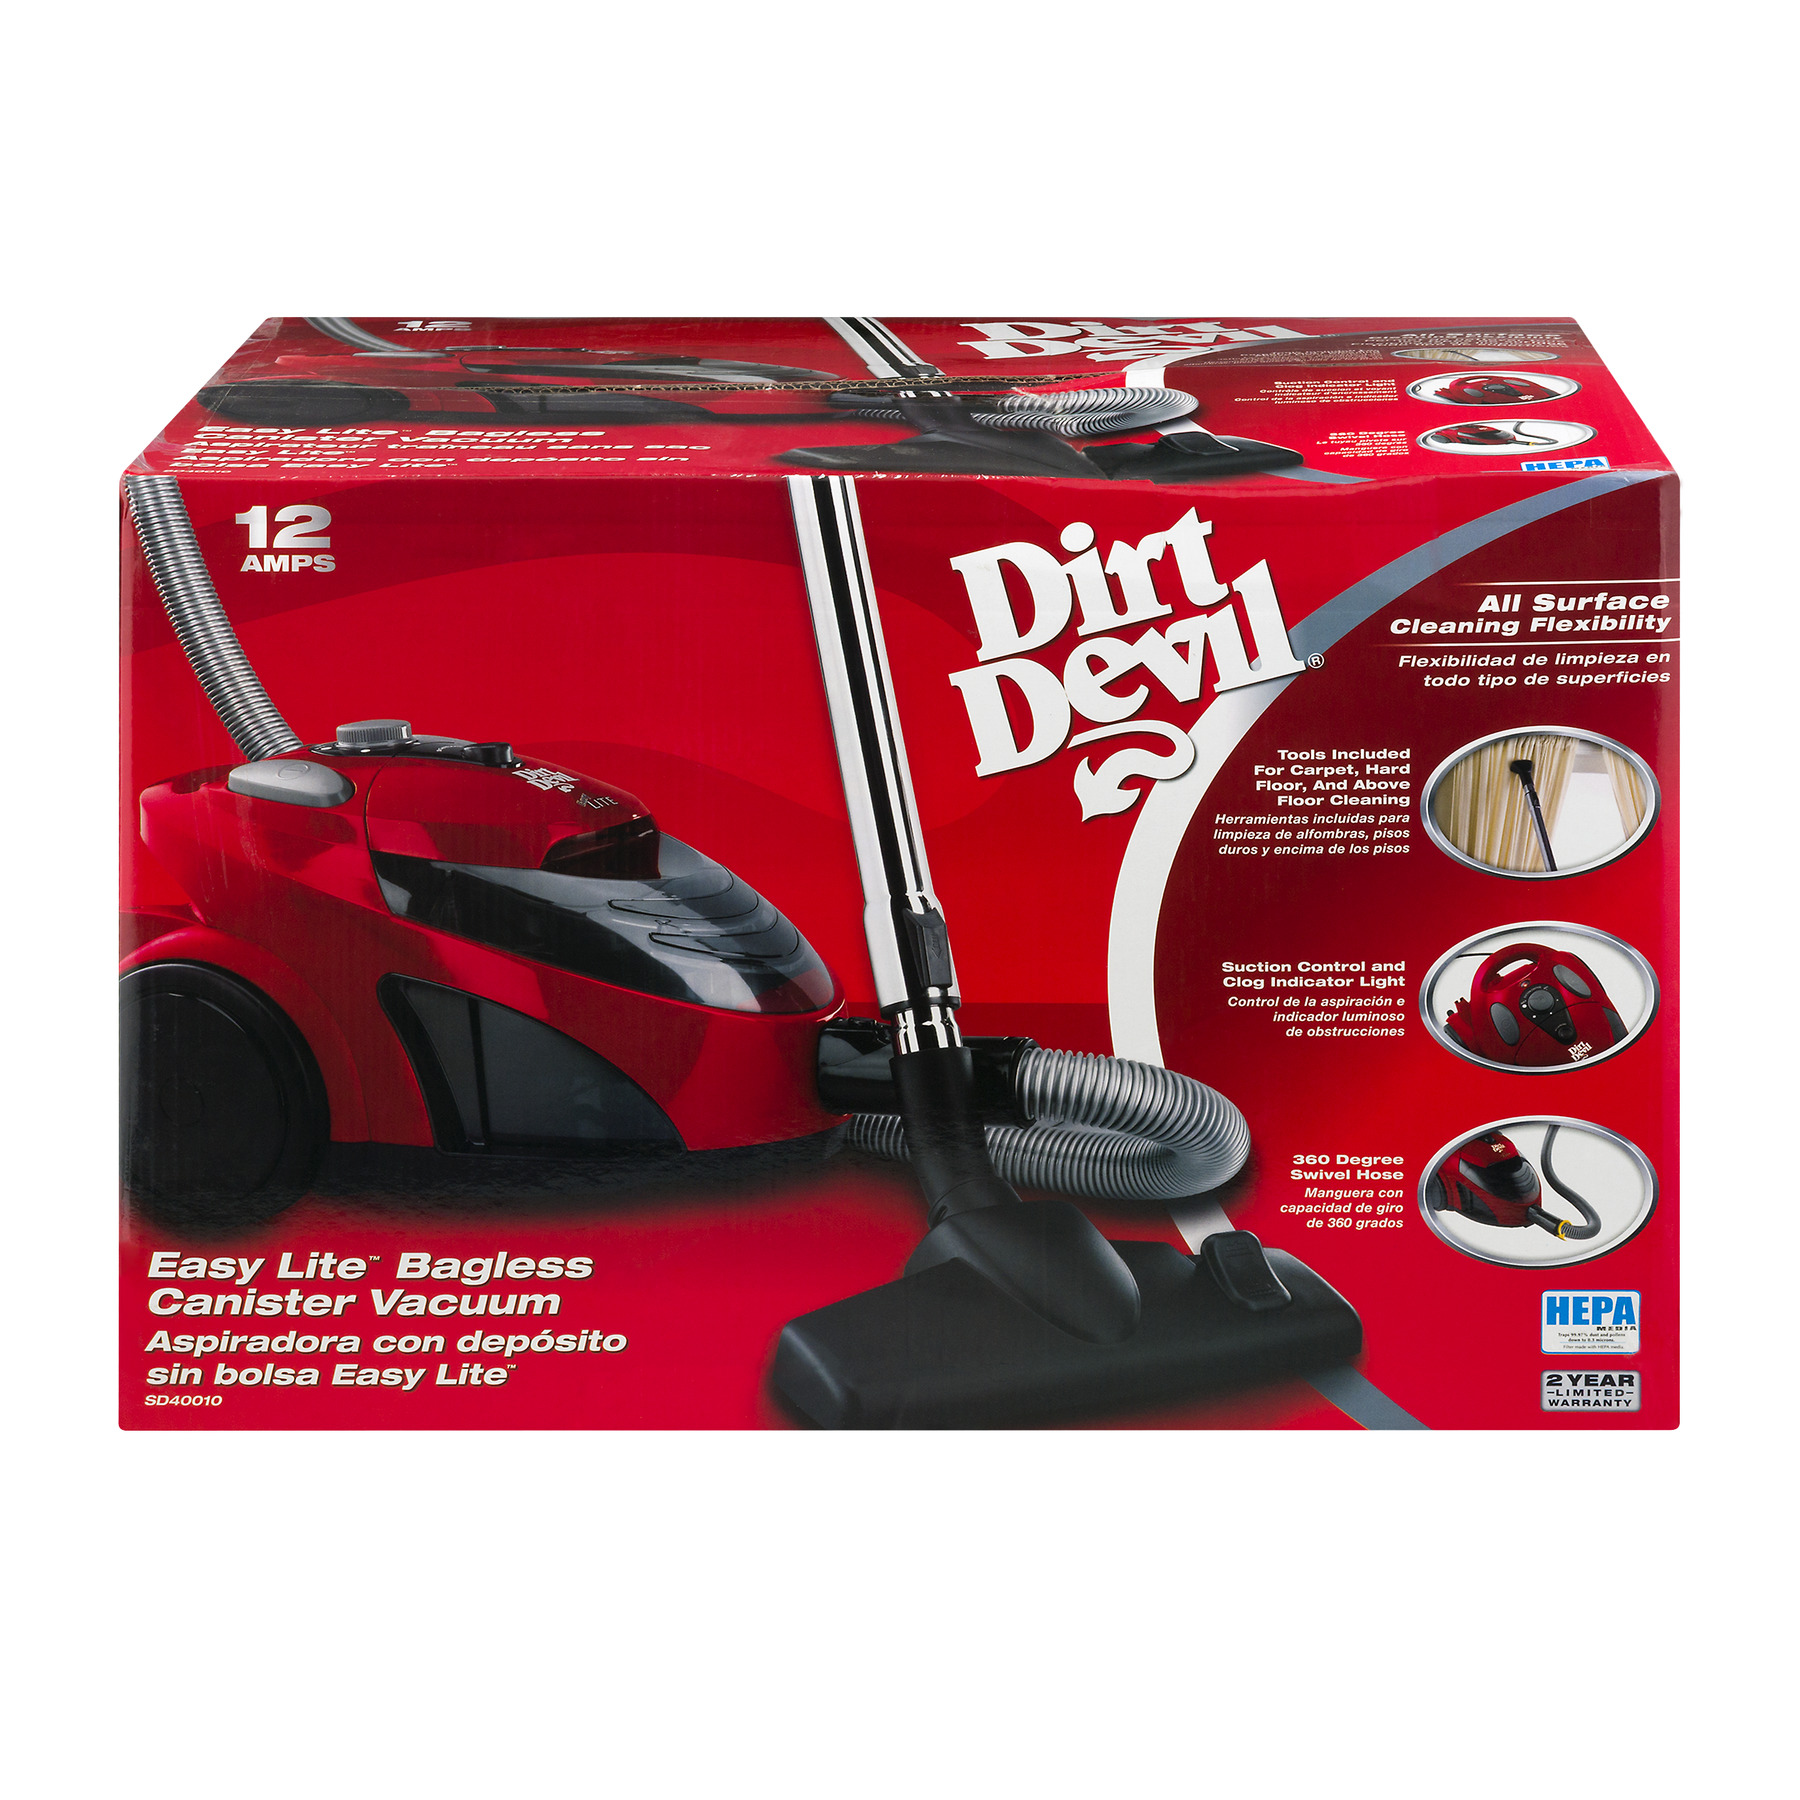 Dirt Devil Easy Lite Bagless Canister Vacuum, 1.0 CT